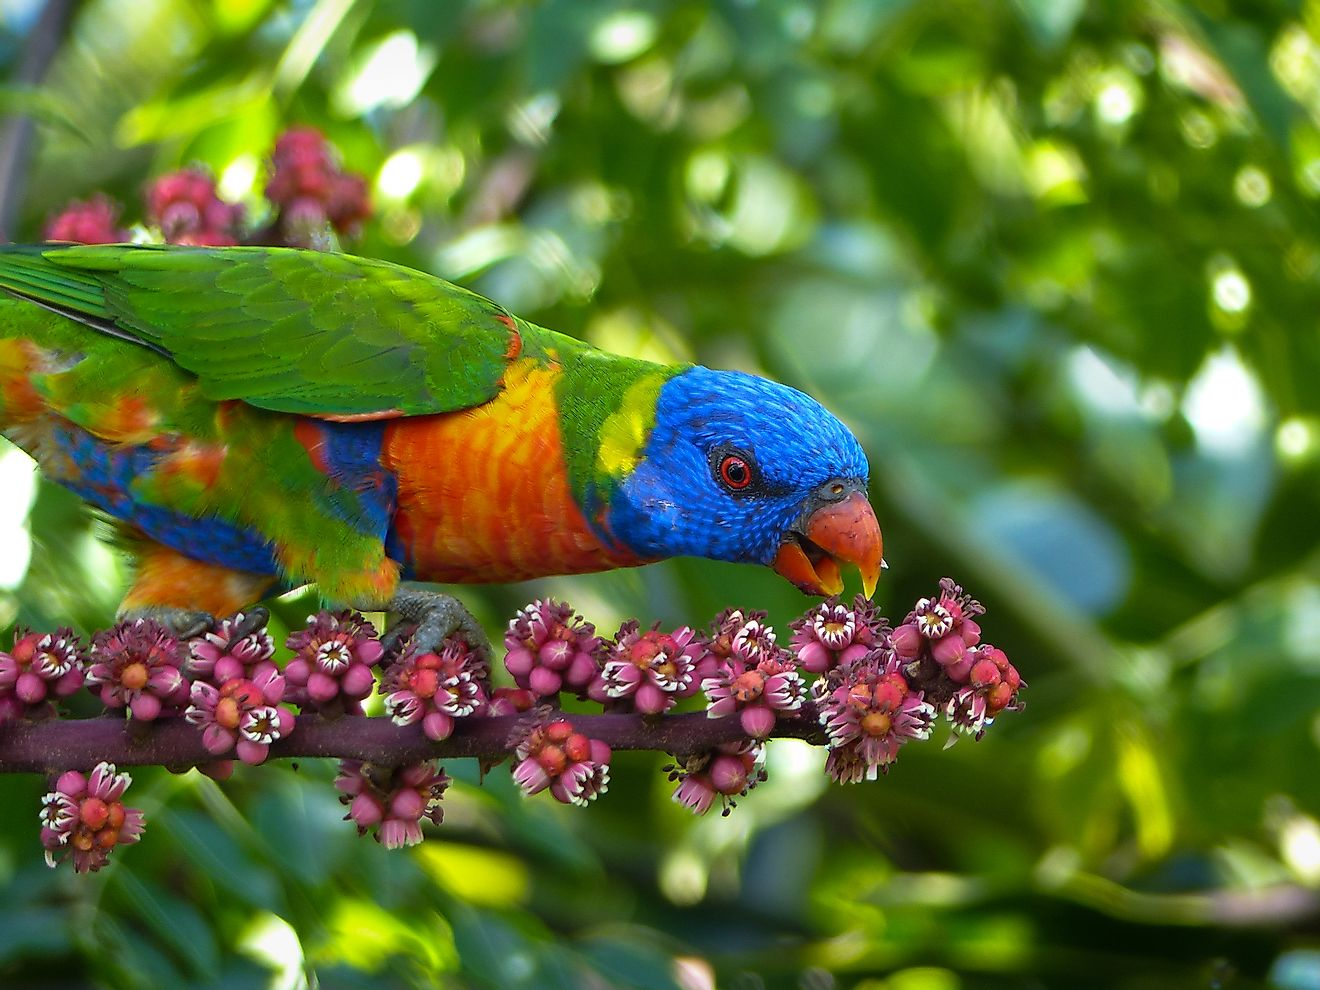 A rainbow lorikeet is a parrot species found in Australia.